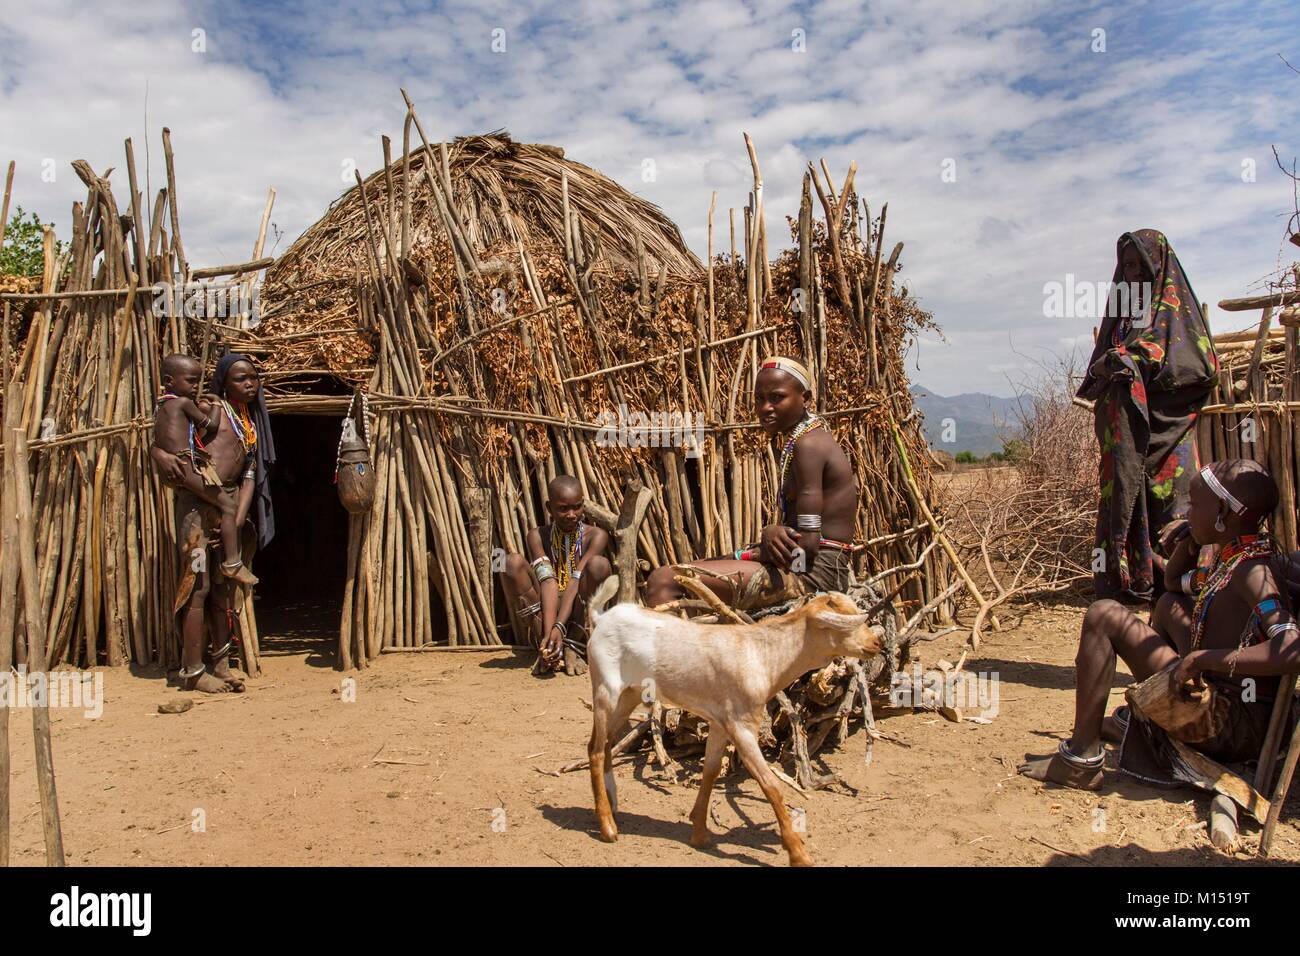 Ethiopia, Lower Omo Valley listed as World Heritage by UNESCO, Erbore tribe, The huts Erbore are made of papyrus - Stock Image